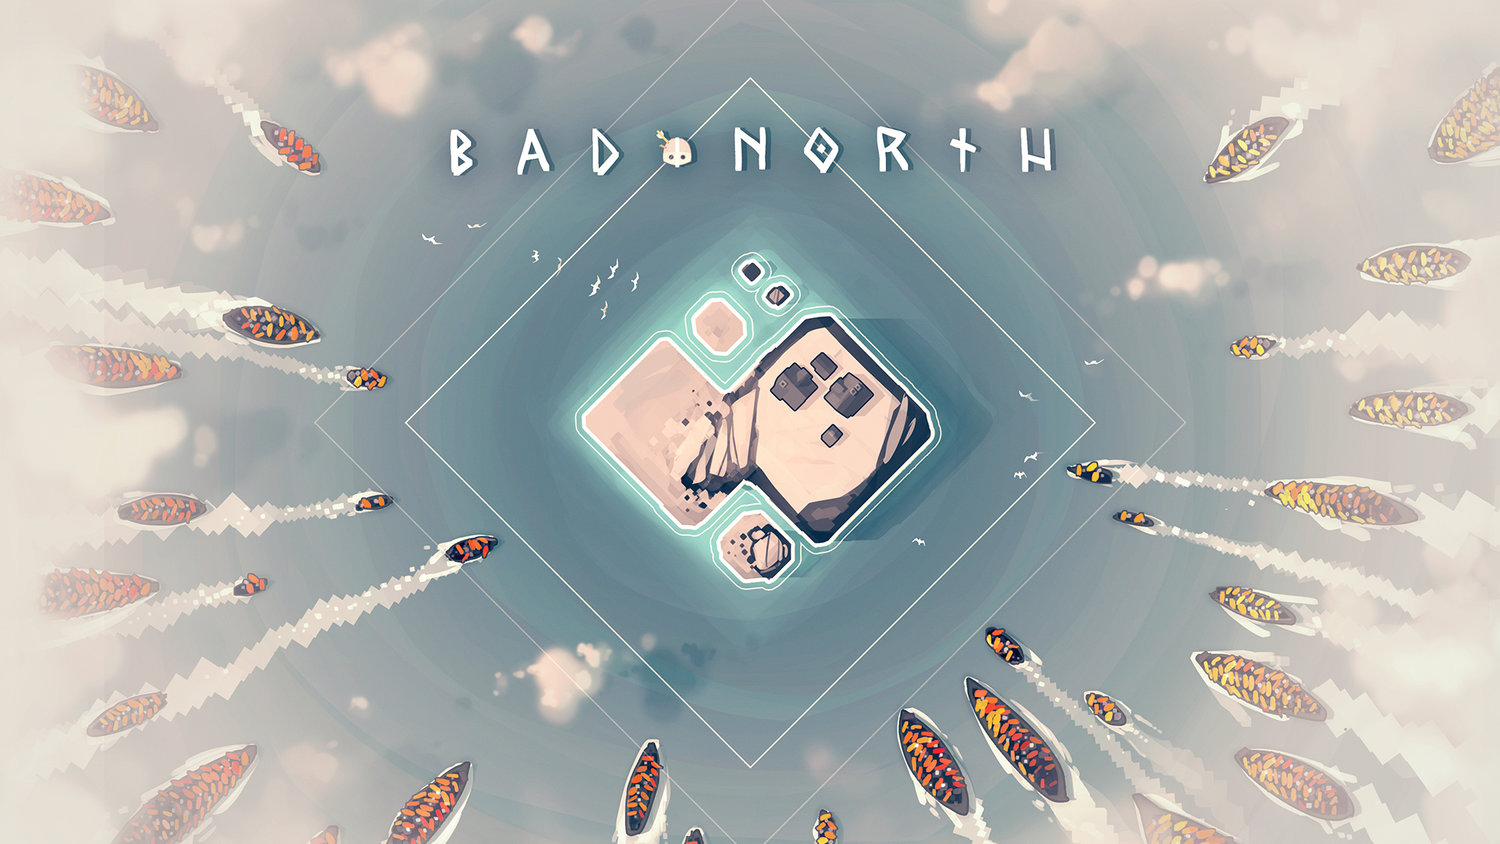 Bad North title banner